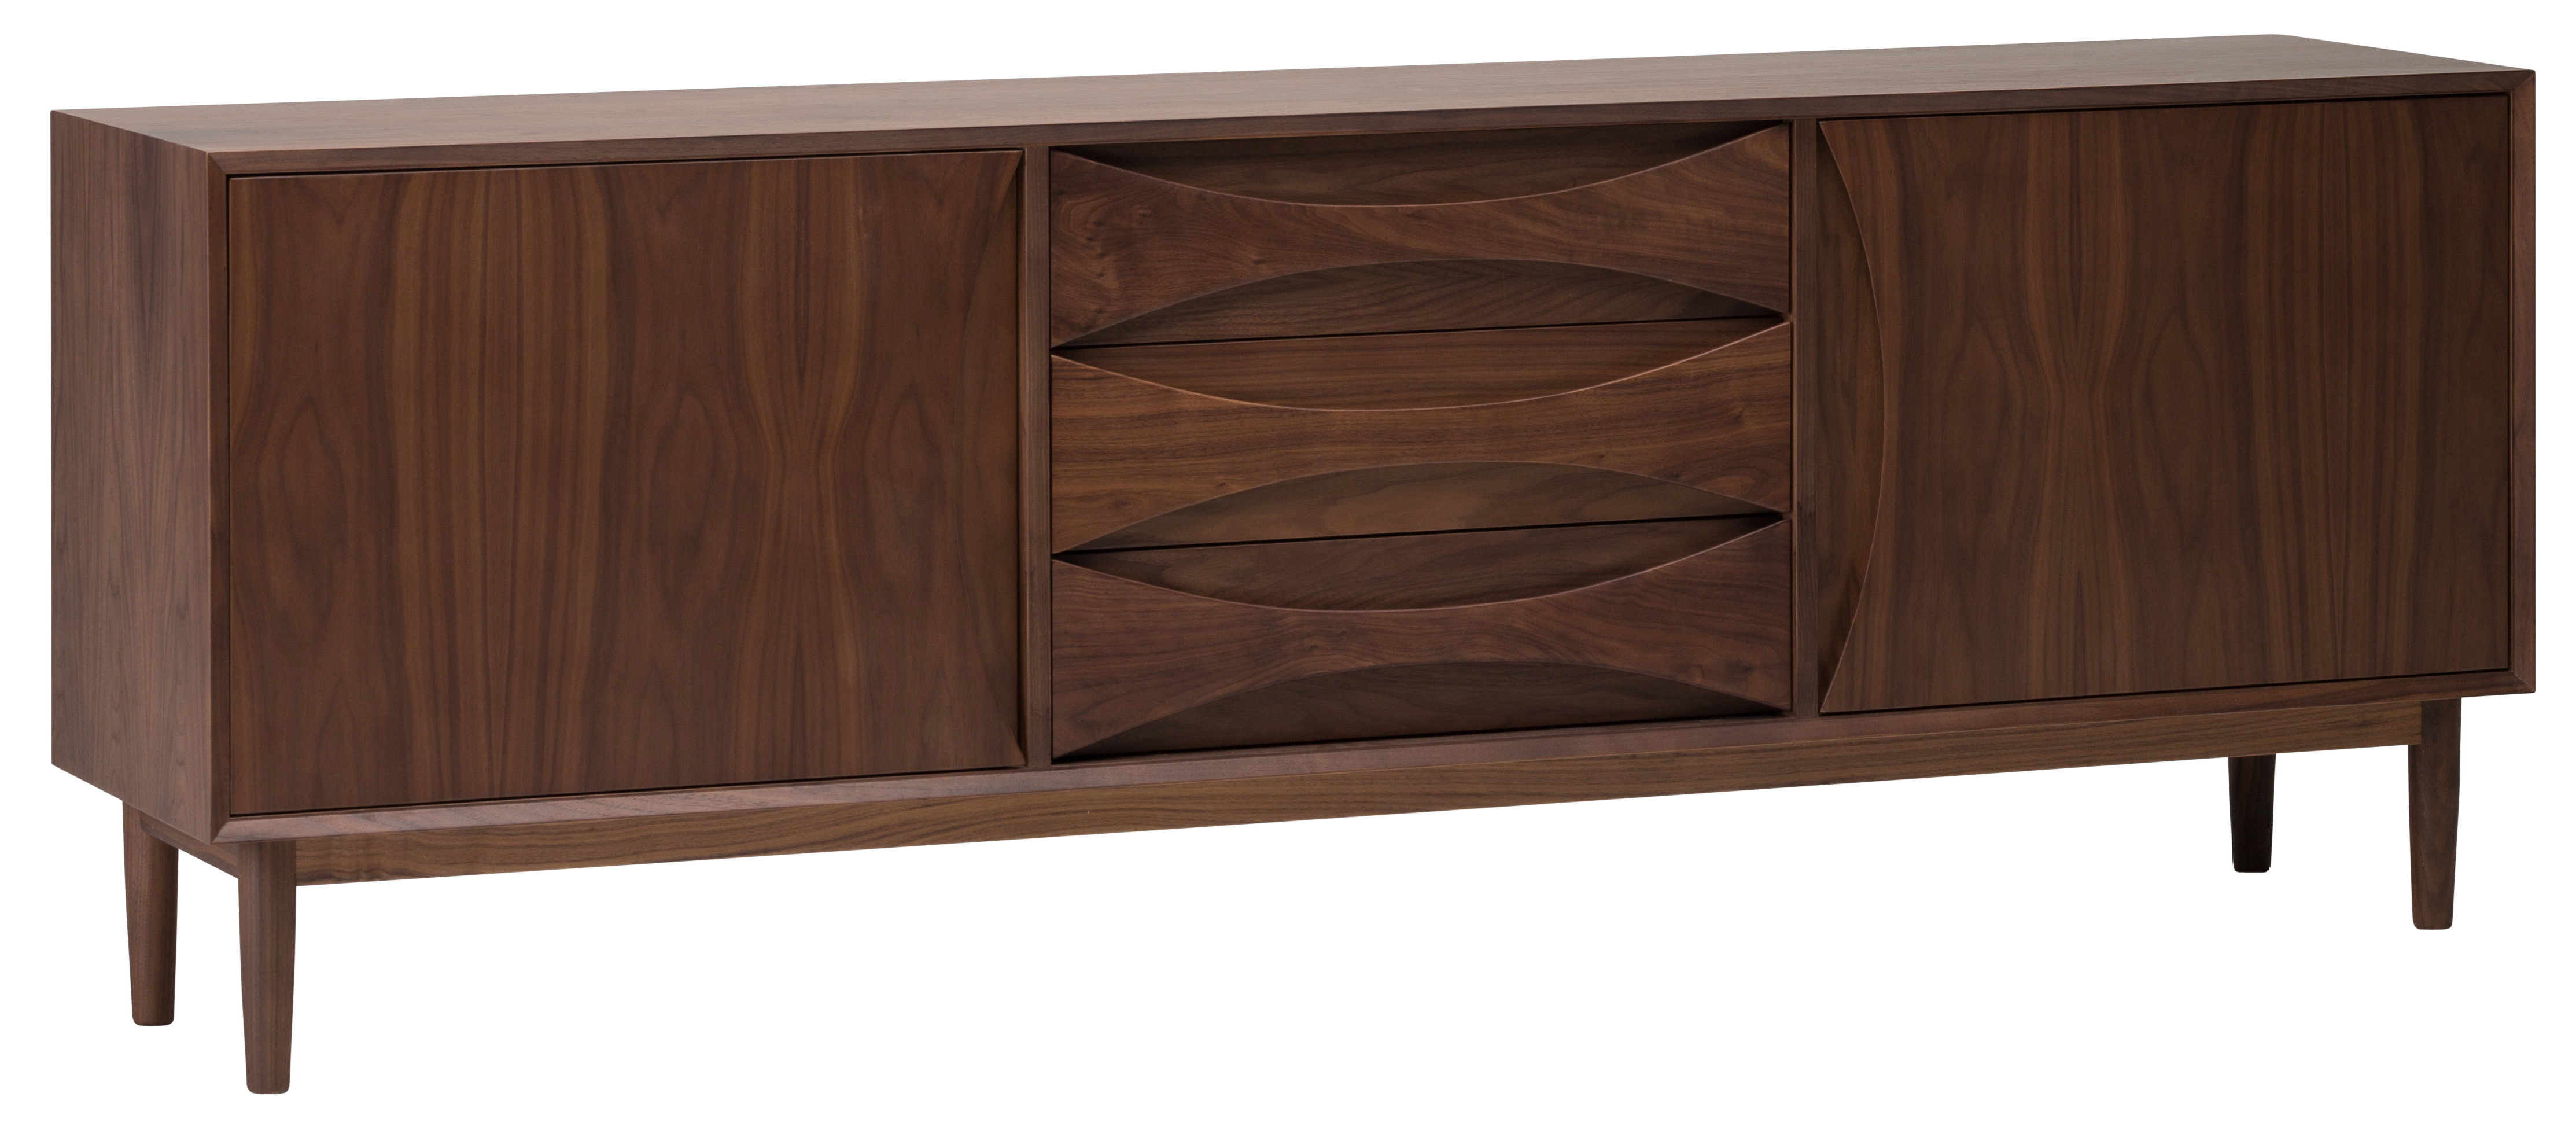 Modern & Contemporary Medina 4 Door Credenza | Allmodern Inside Kieth 4 Door Credenzas (View 9 of 20)